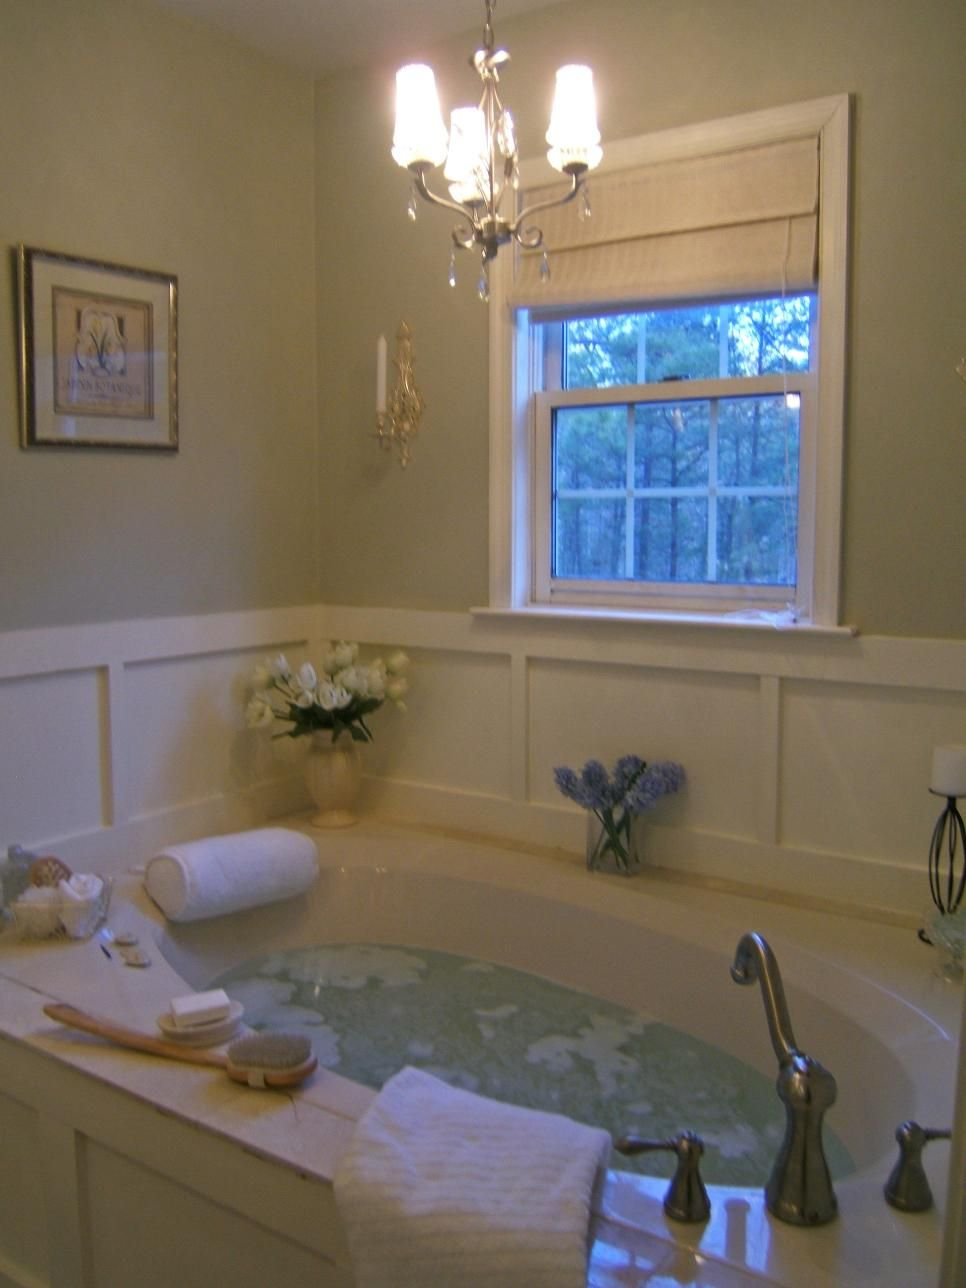 Hgtv rate my space bathrooms - Budget Friendly Bathroom Makeovers From Rate My Space